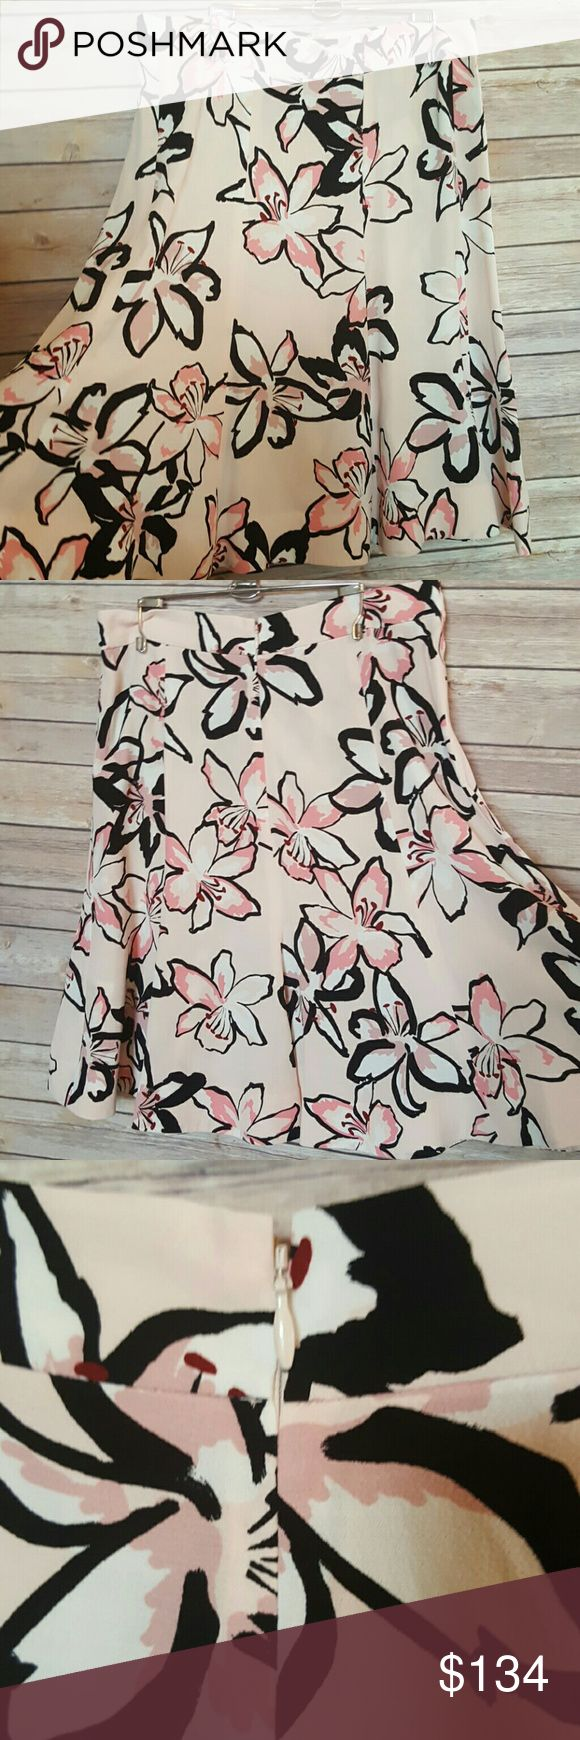 "NWT Kate Spade Tiger Lily Crepe Skirt A Line 10 NWT  Size 10 Tiger Lily Crepe Skirt Flights of Fancy Pink Floral pattern, perfect for spring Career, business, work, office attire or for a fun occasion. Not lined  100% viscose Waist 15.5"" flat - 31"" Length 23"" kate spade Skirts A-Line or Full"